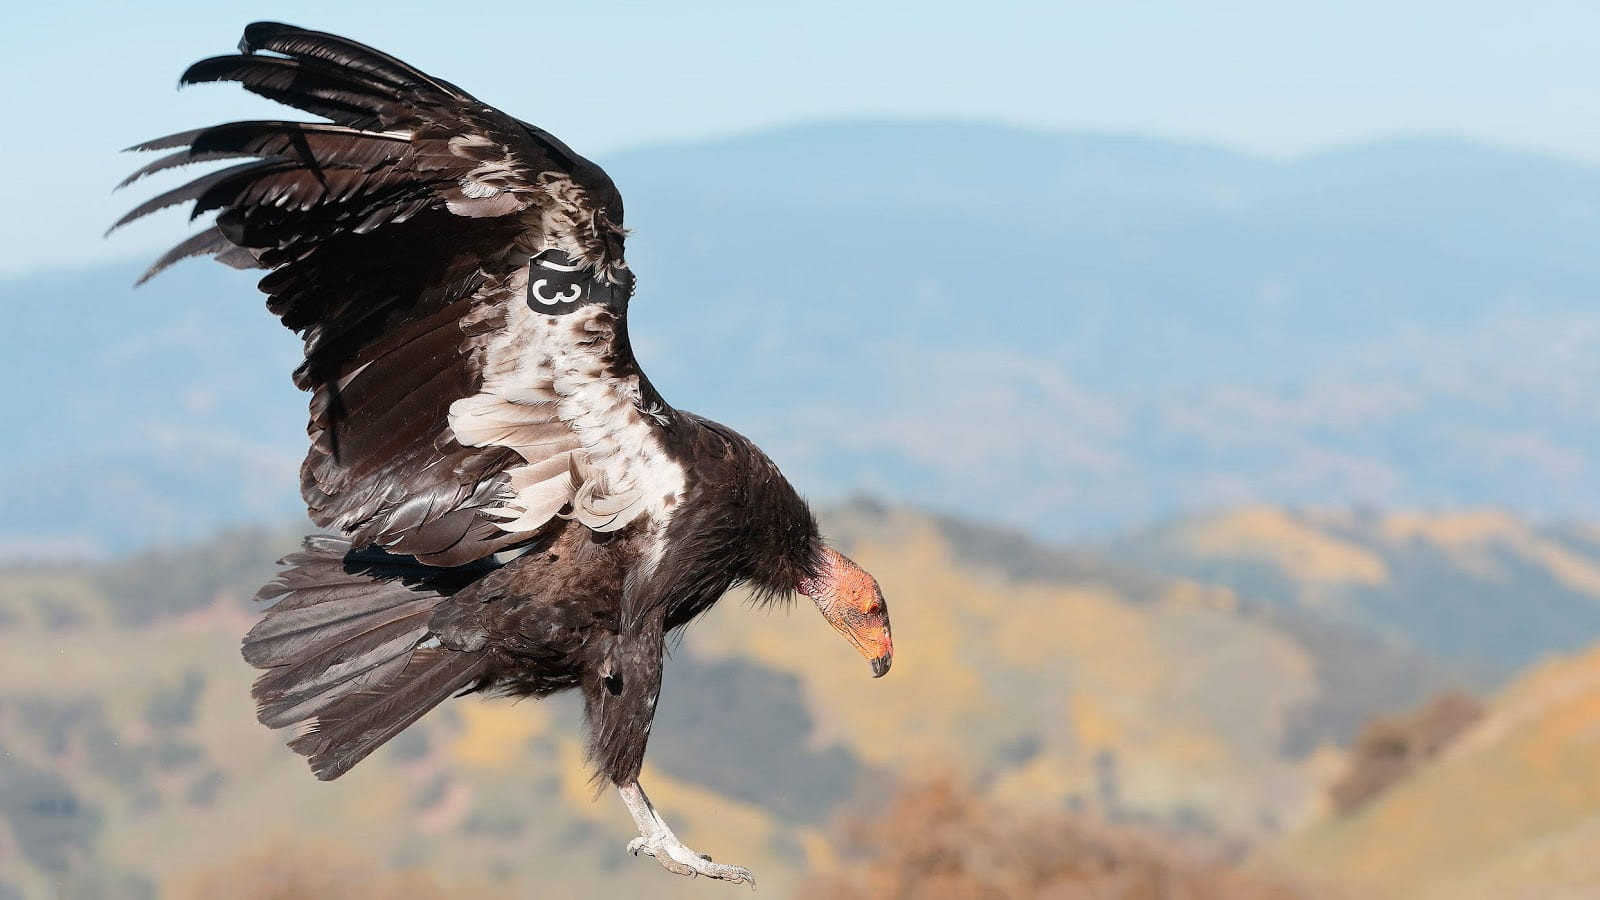 Adult California Condor photographed by Loi Nguyen.